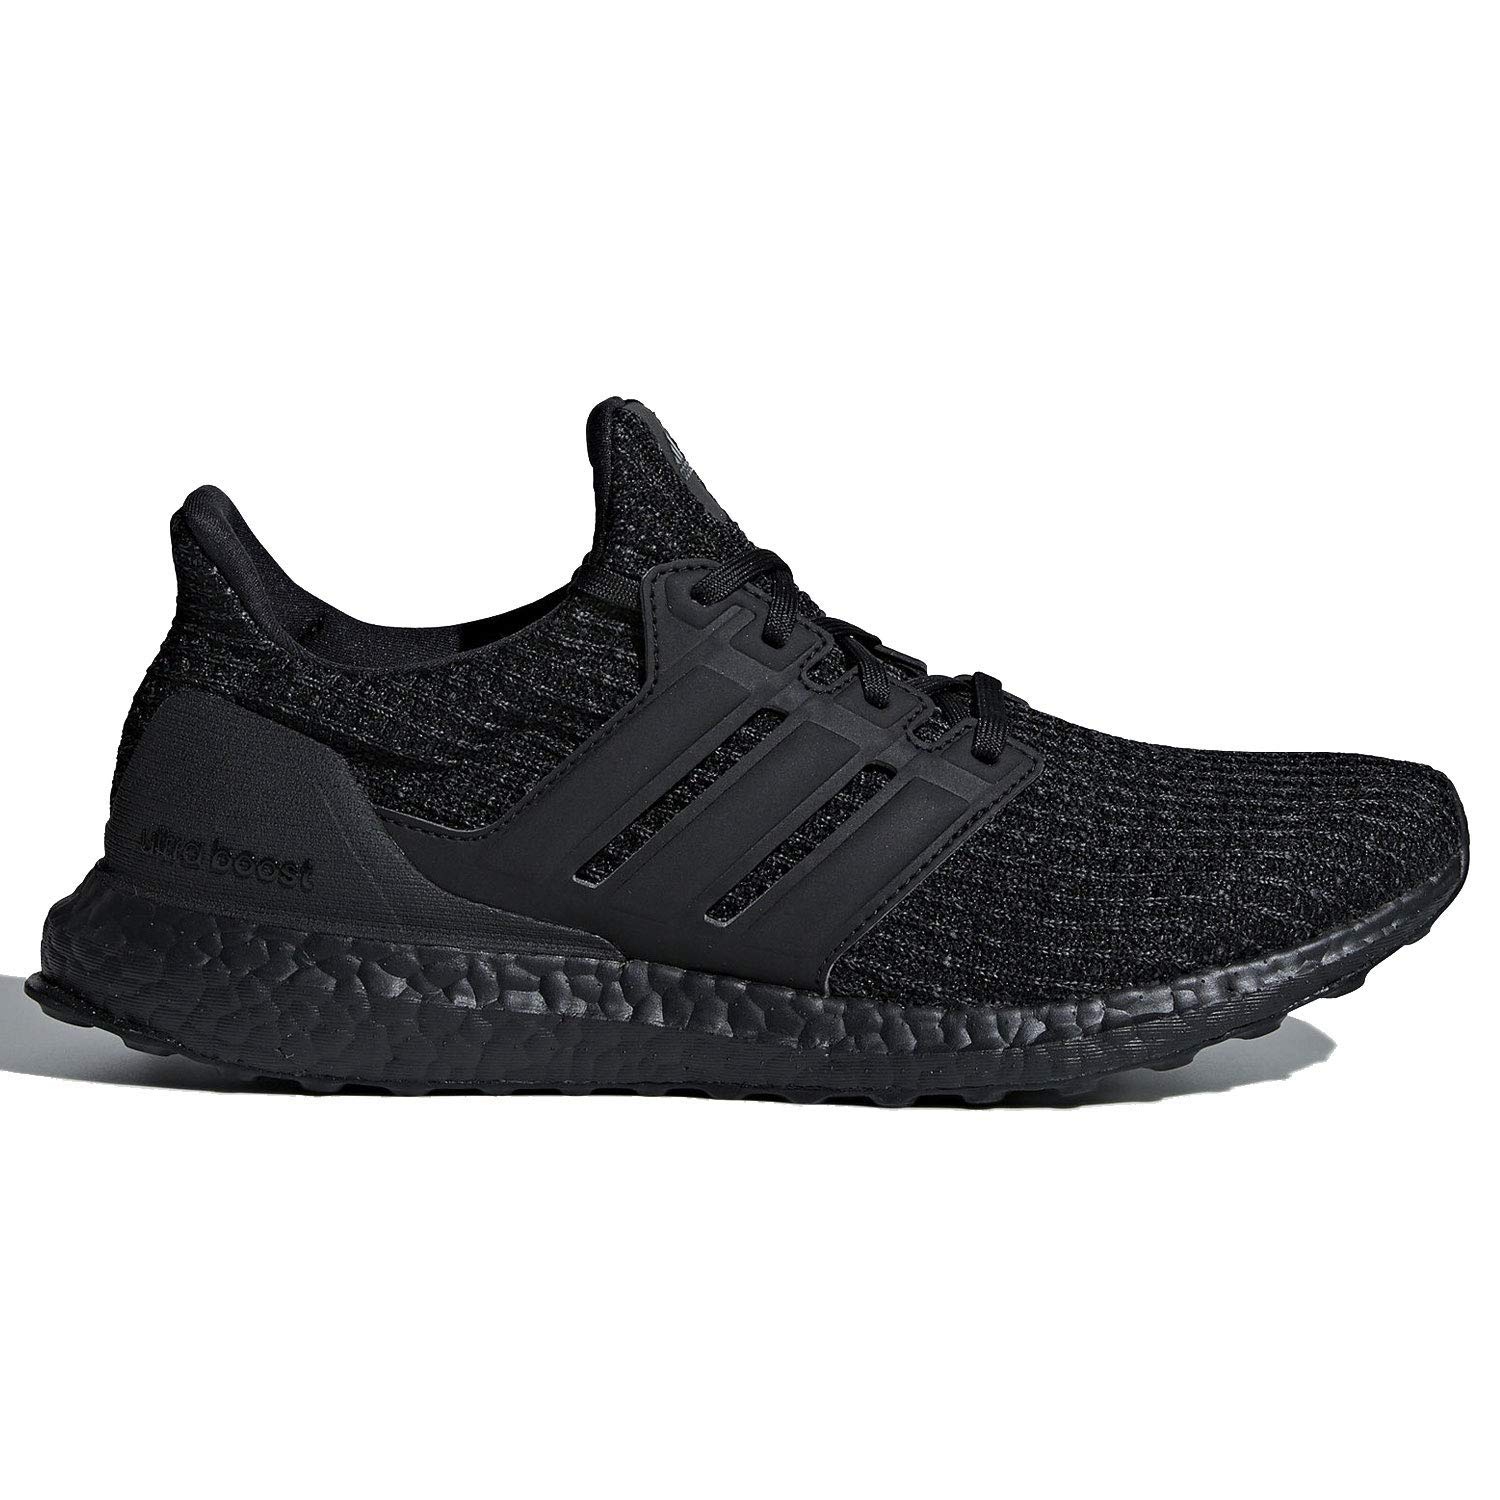 new product 6ad71 96f25 Amazon.com   adidas Men s Ultra Boost Running Shoe   Road Running